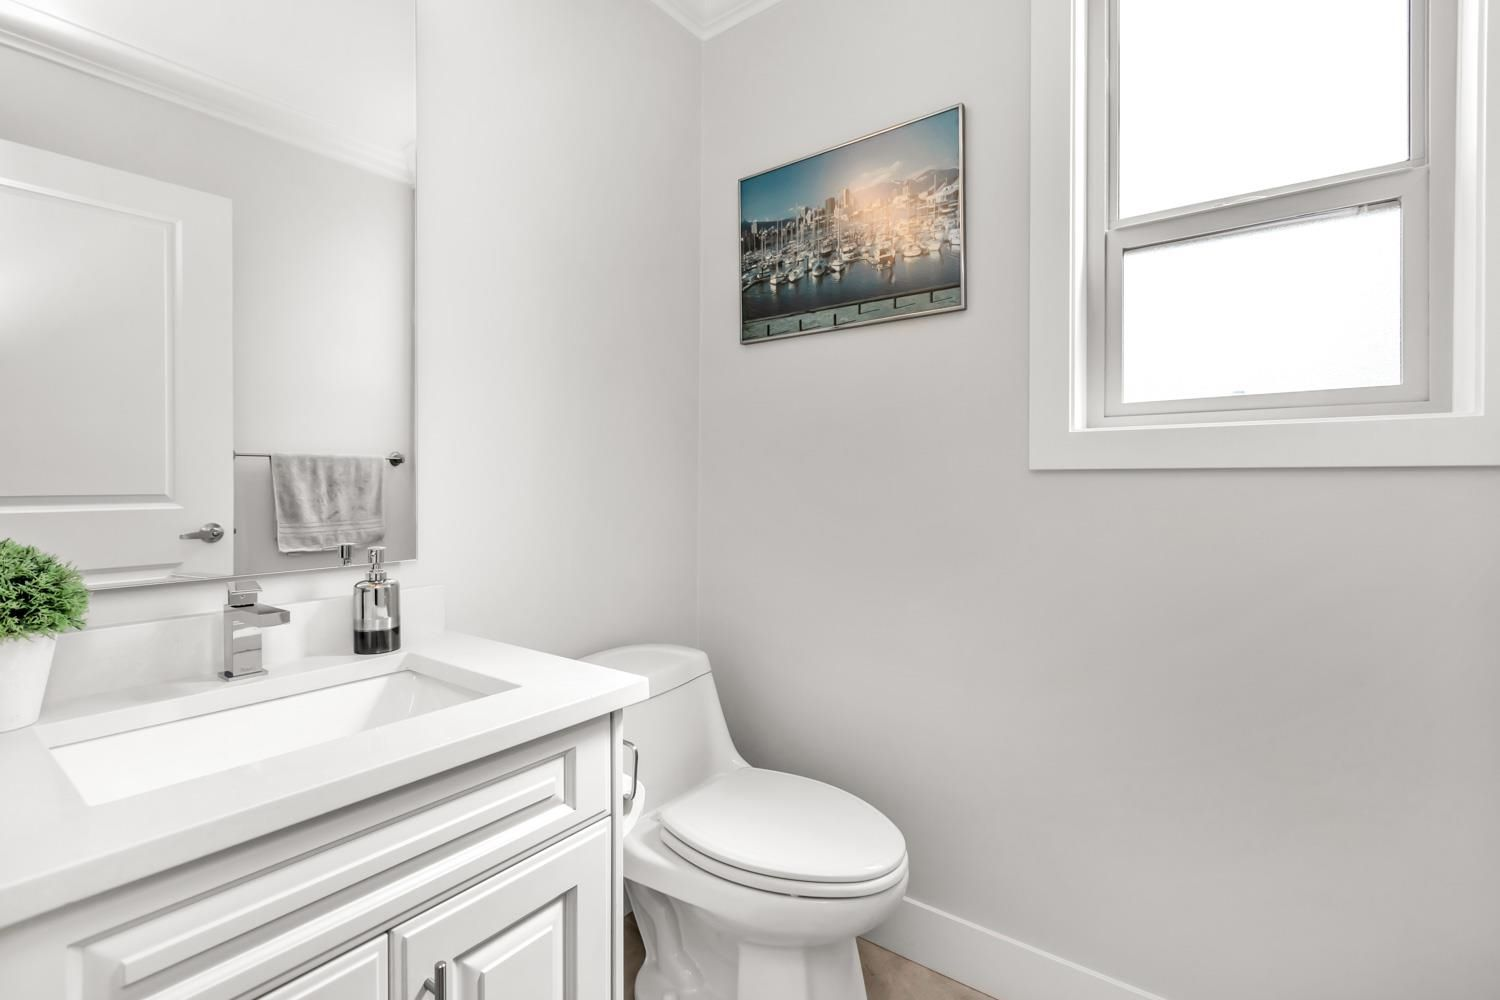 Photo 19: Photos: 98 19913 70 Avenue in Langley: Willoughby Heights Townhouse for sale : MLS®# R2606437